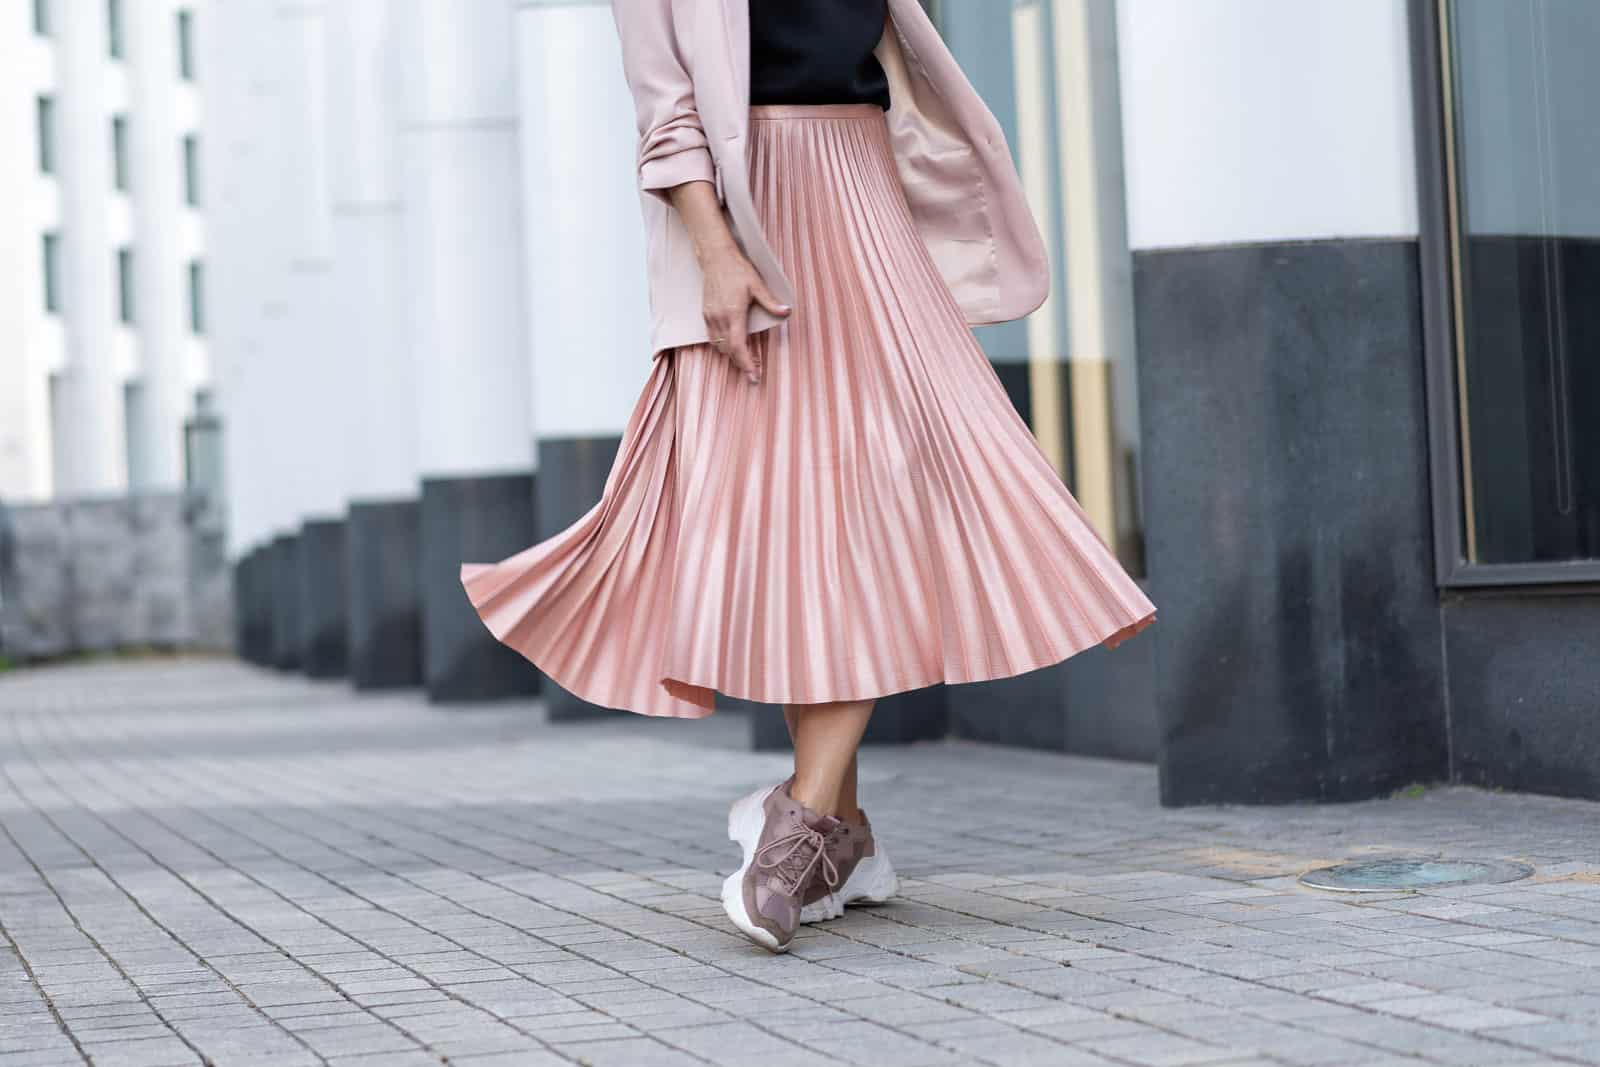 Gonna plissè - Peach colored A Line Pleated Skirt Di Денис Бухлаев